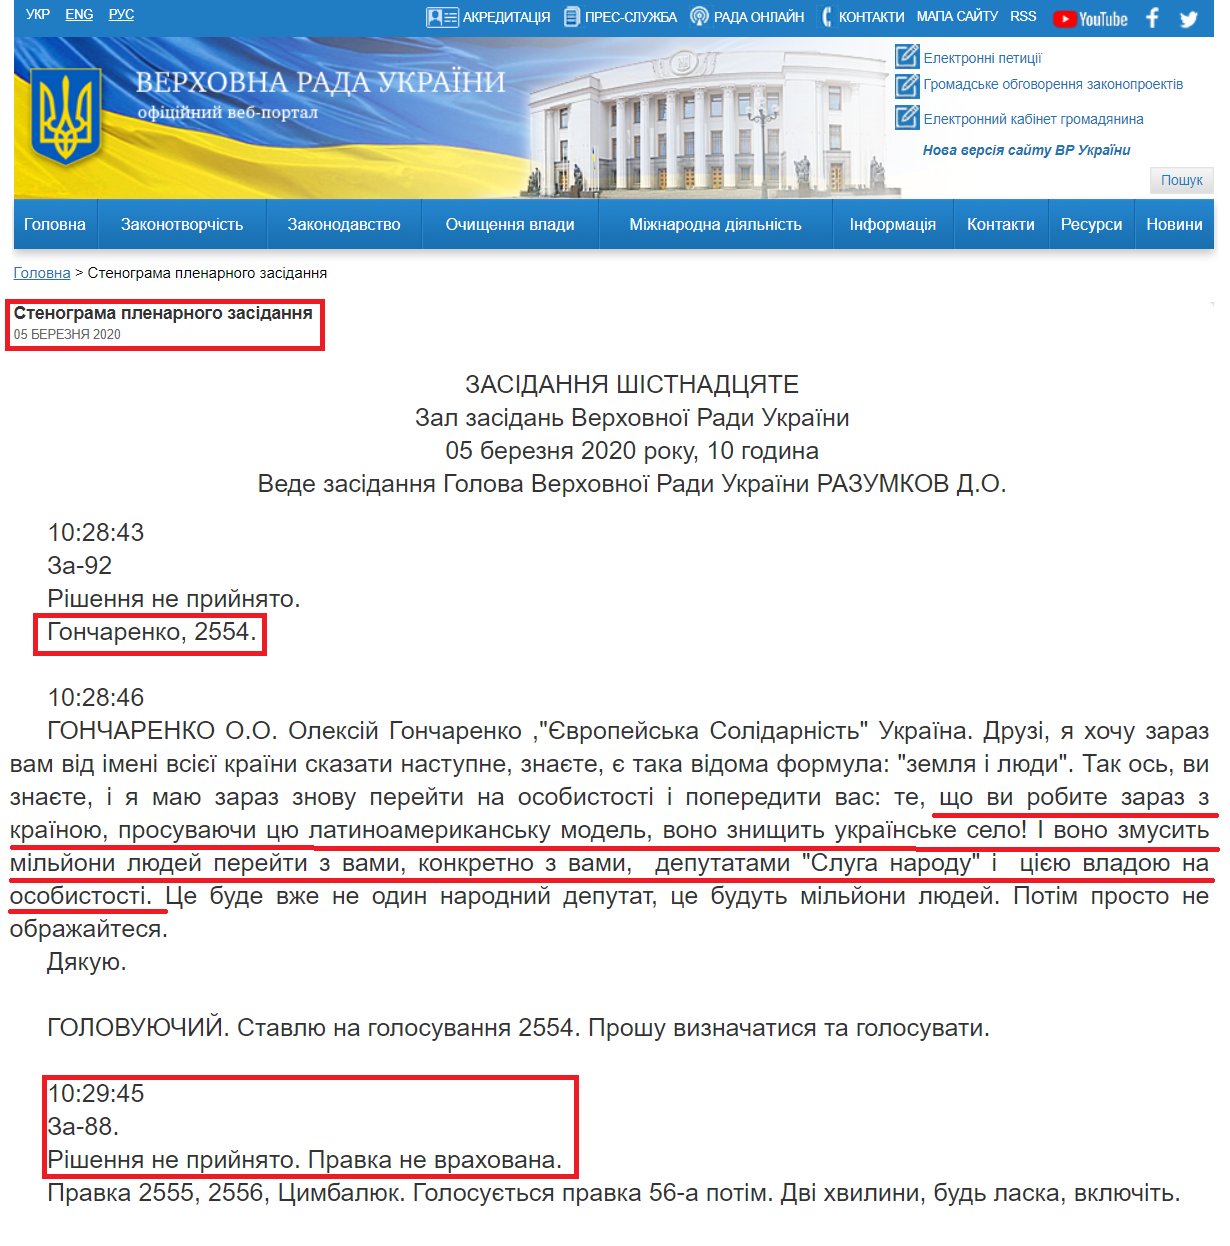 https://iportal.rada.gov.ua/meeting/stenogr/show/7379.html